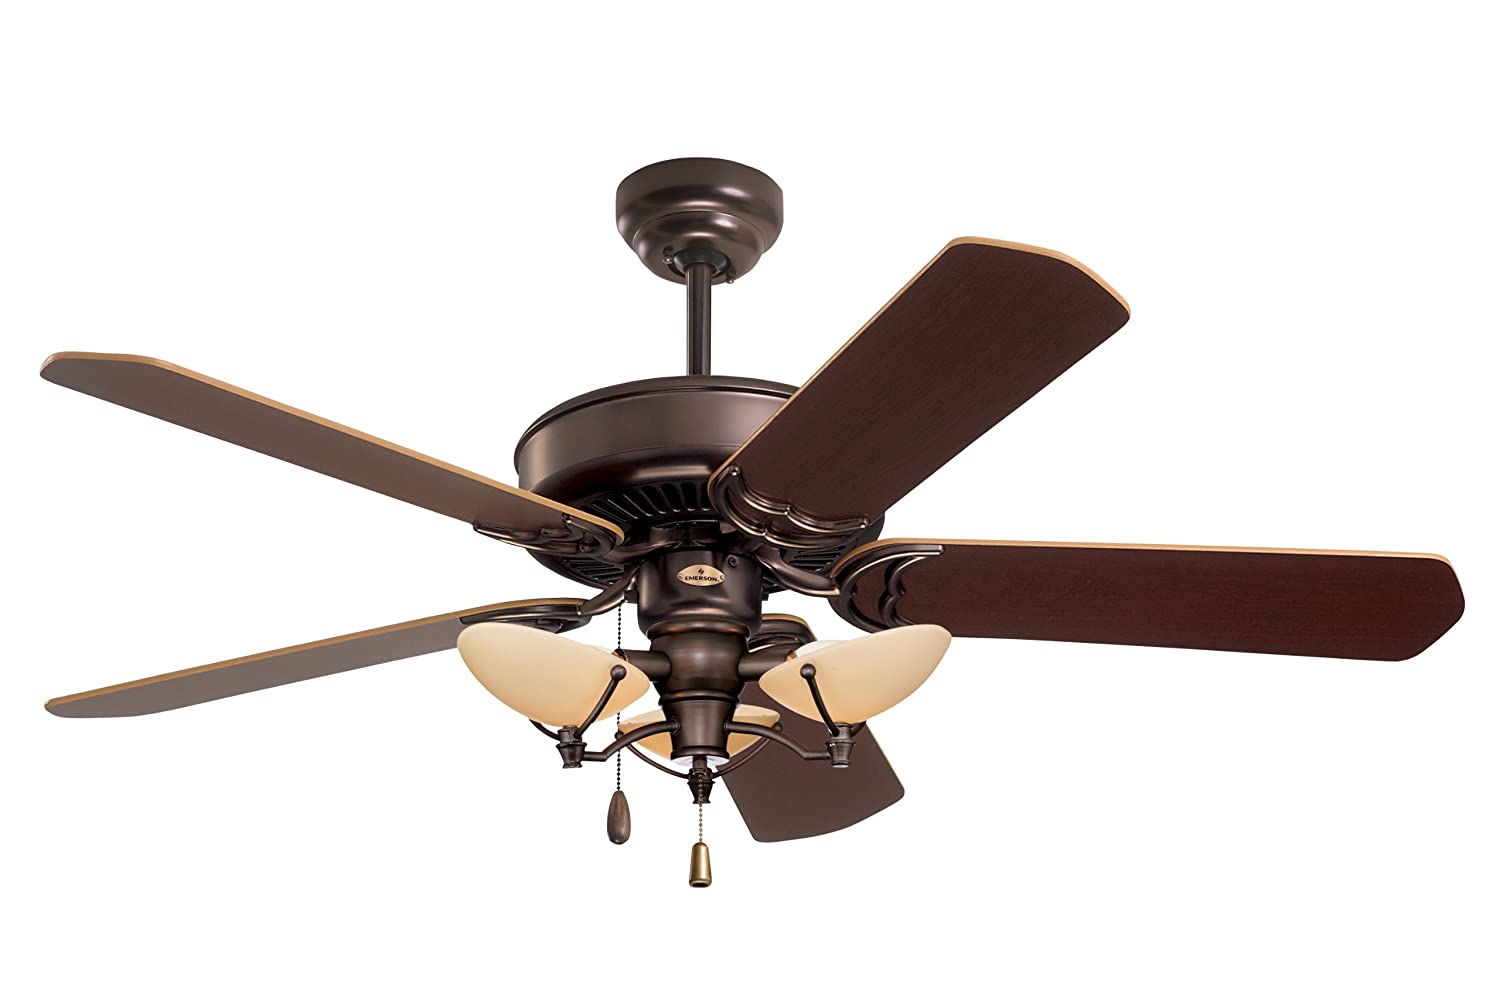 Emerson ceiling fans cf755orb designer 52 inch energy star ceiling emerson ceiling fans cf755orb designer 52 inch energy star ceiling fan light kit adaptable oil rubbed bronze finish amazon mozeypictures